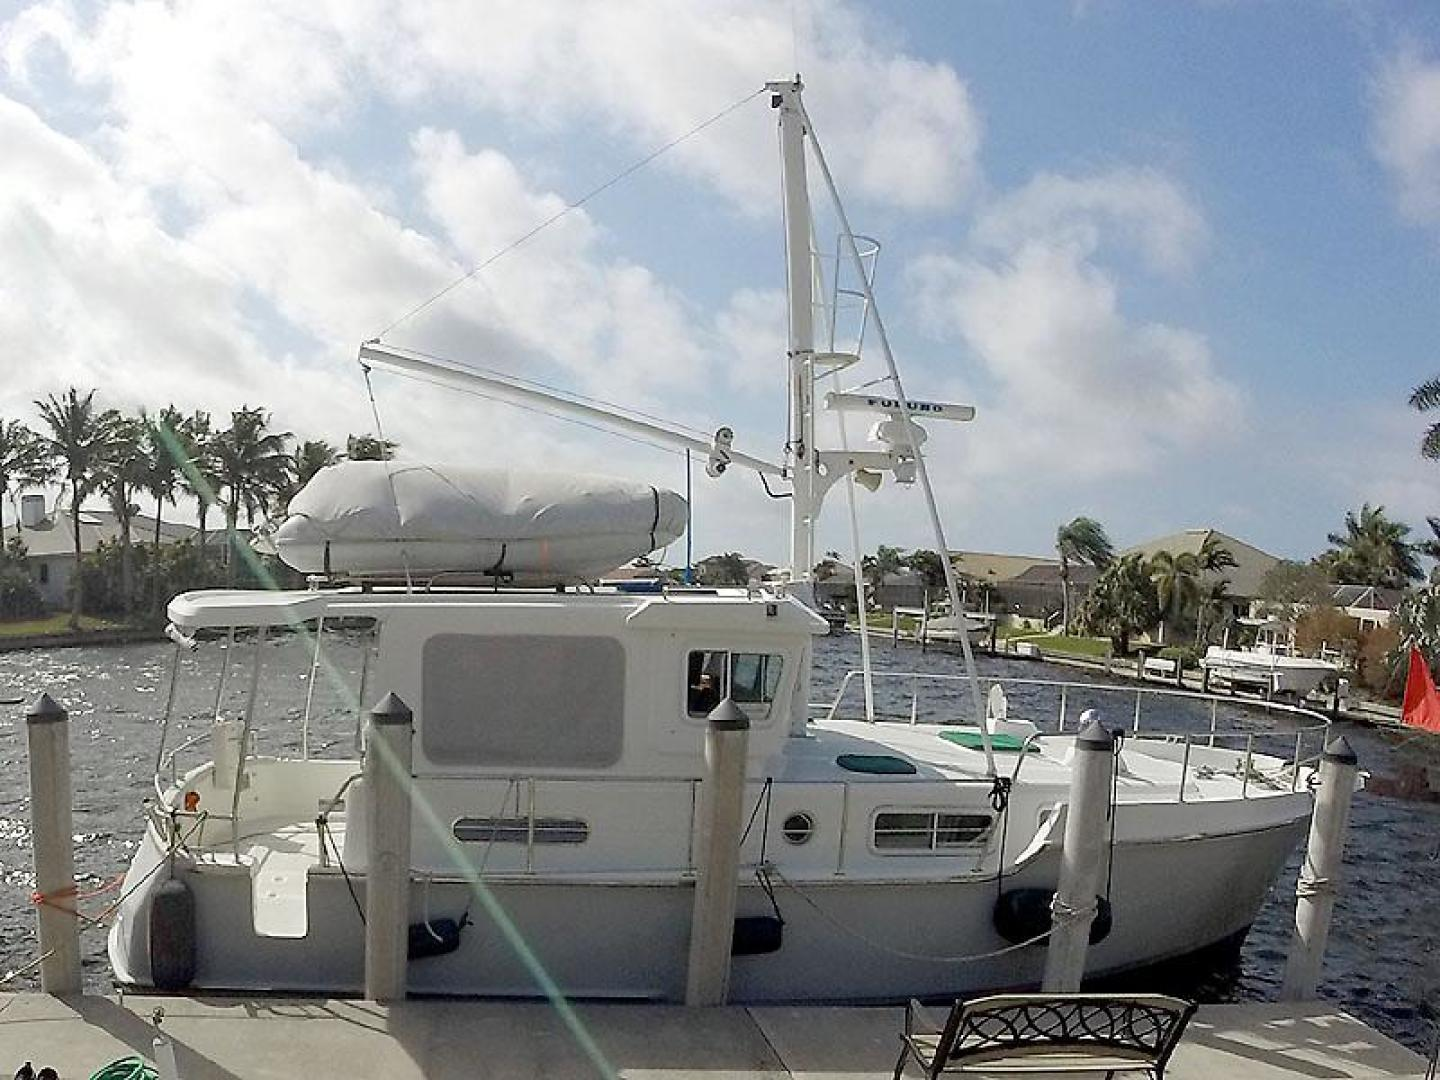 Used Nordhavn 35' Coastal Pilot For Sale In Florida | Abacus